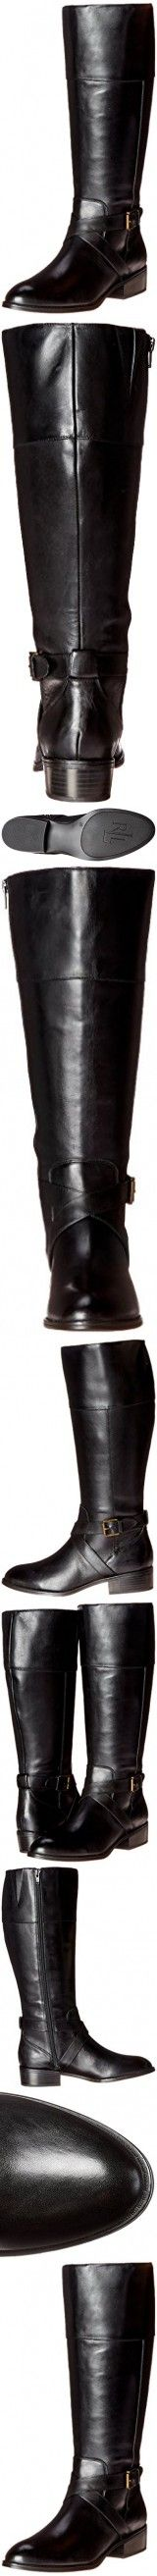 Lauren Ralph Lauren Women's Maryann Wide Calf Riding Boot, Black, 6.5 B US